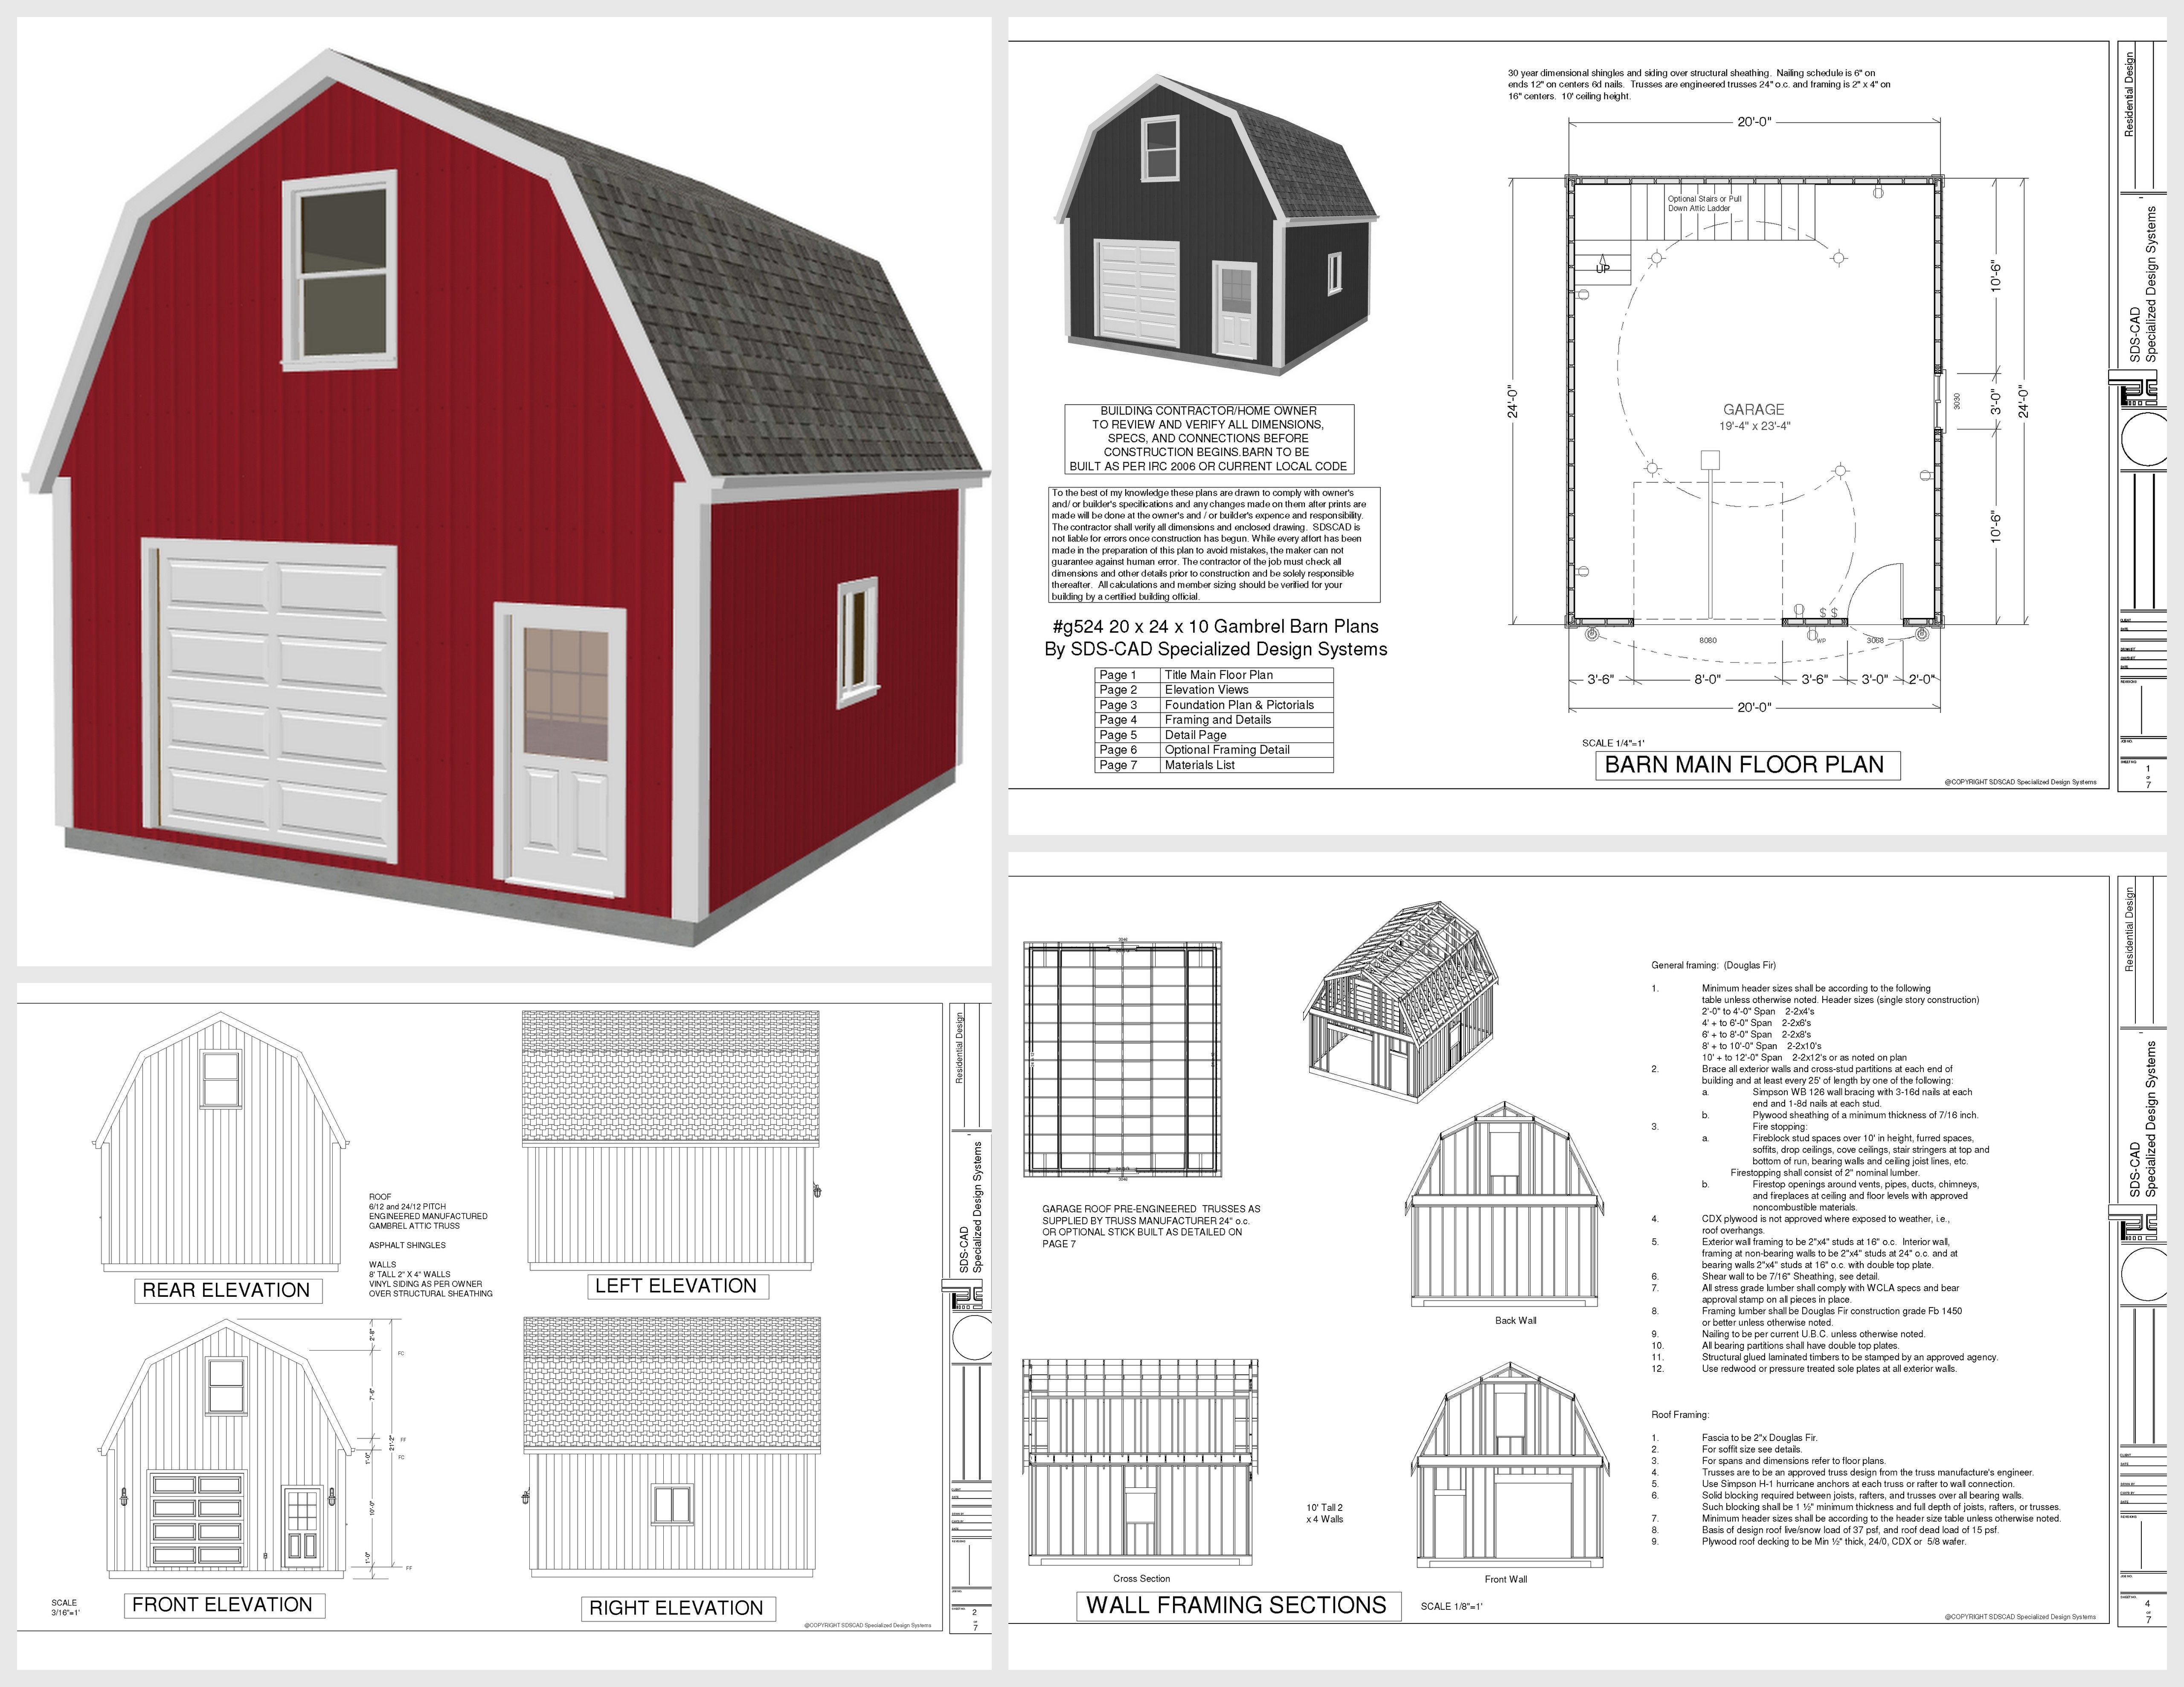 G524 20 x 24 x 10 gambrel garage barn plans pdf and dwg for American barn house floor plans